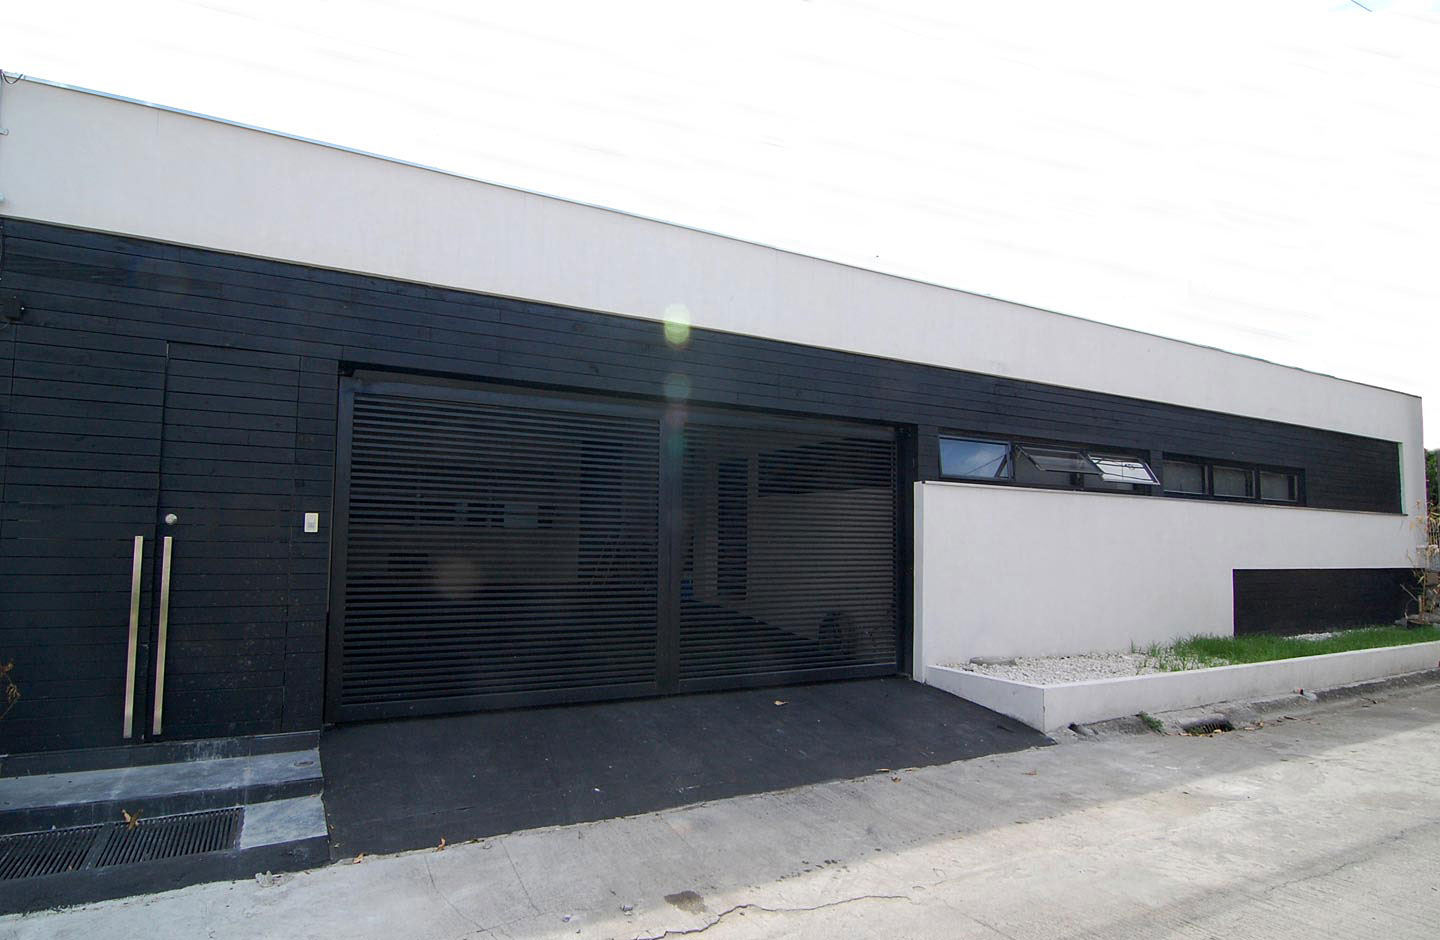 940 #415D34 Contemporary Courtyard House By Buensalido Architects 1 pic Black Steel Garage Doors 36511440